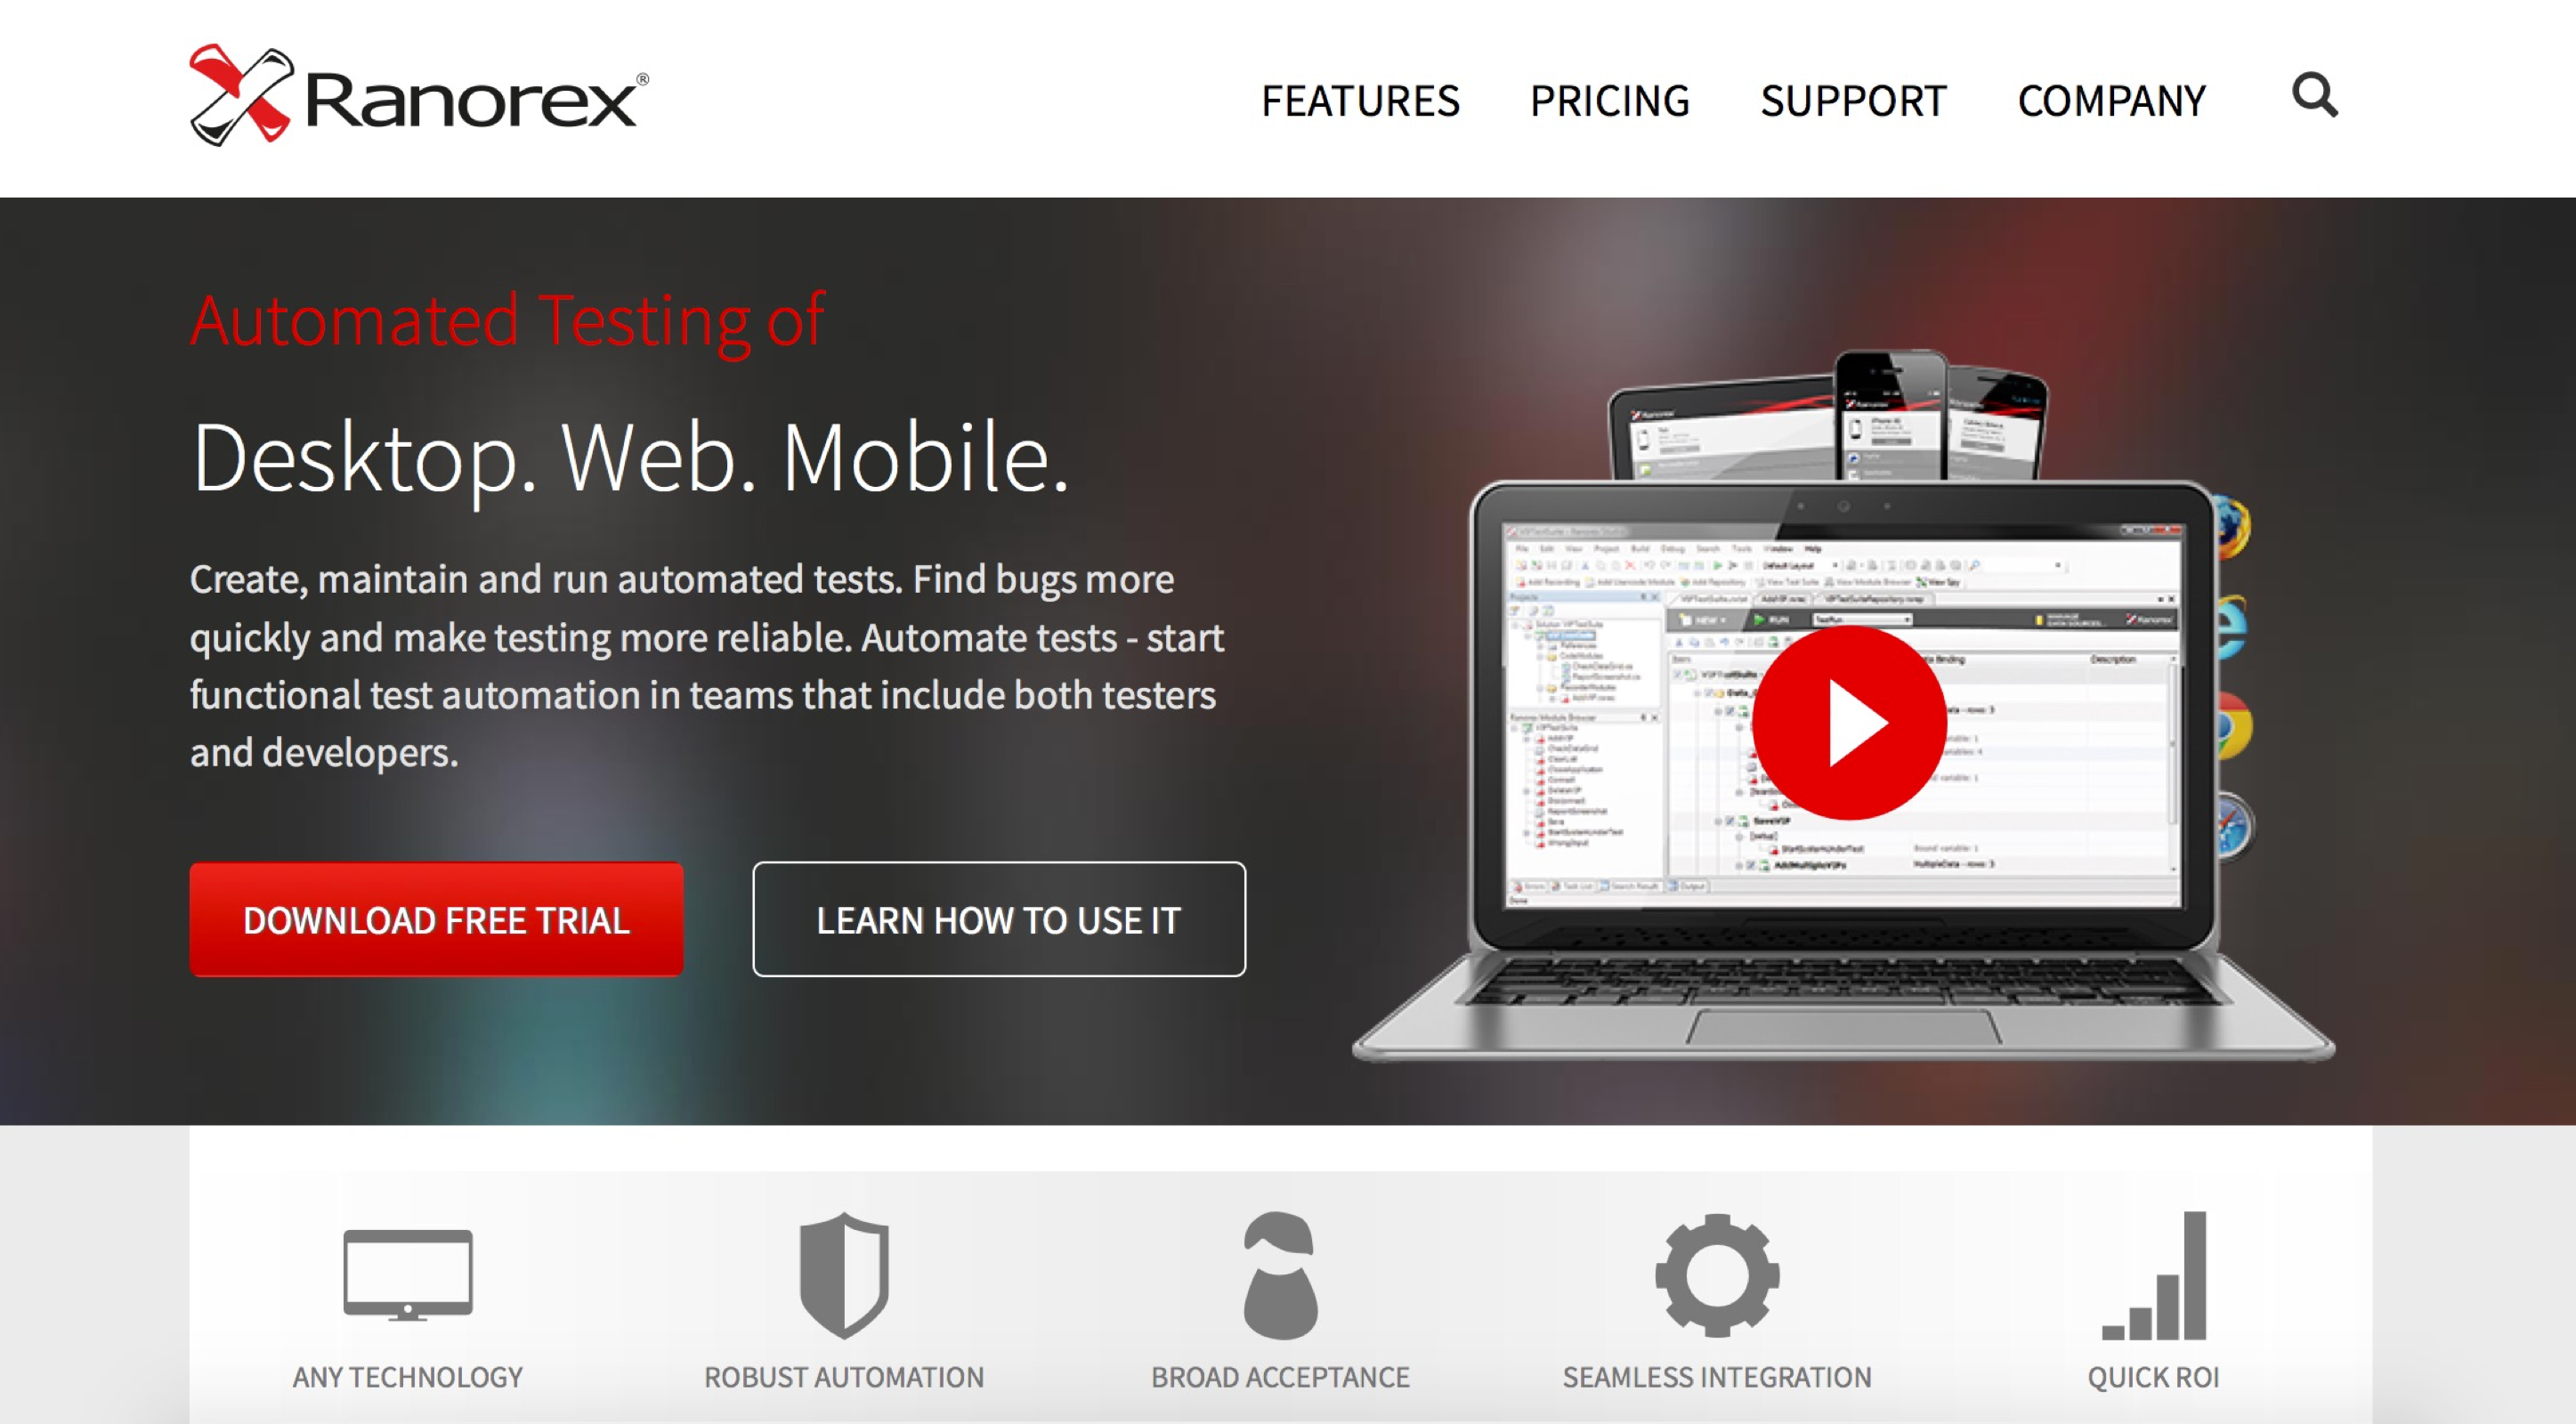 Ranorex - Automated Testing of Desktop. Web. Mobile.